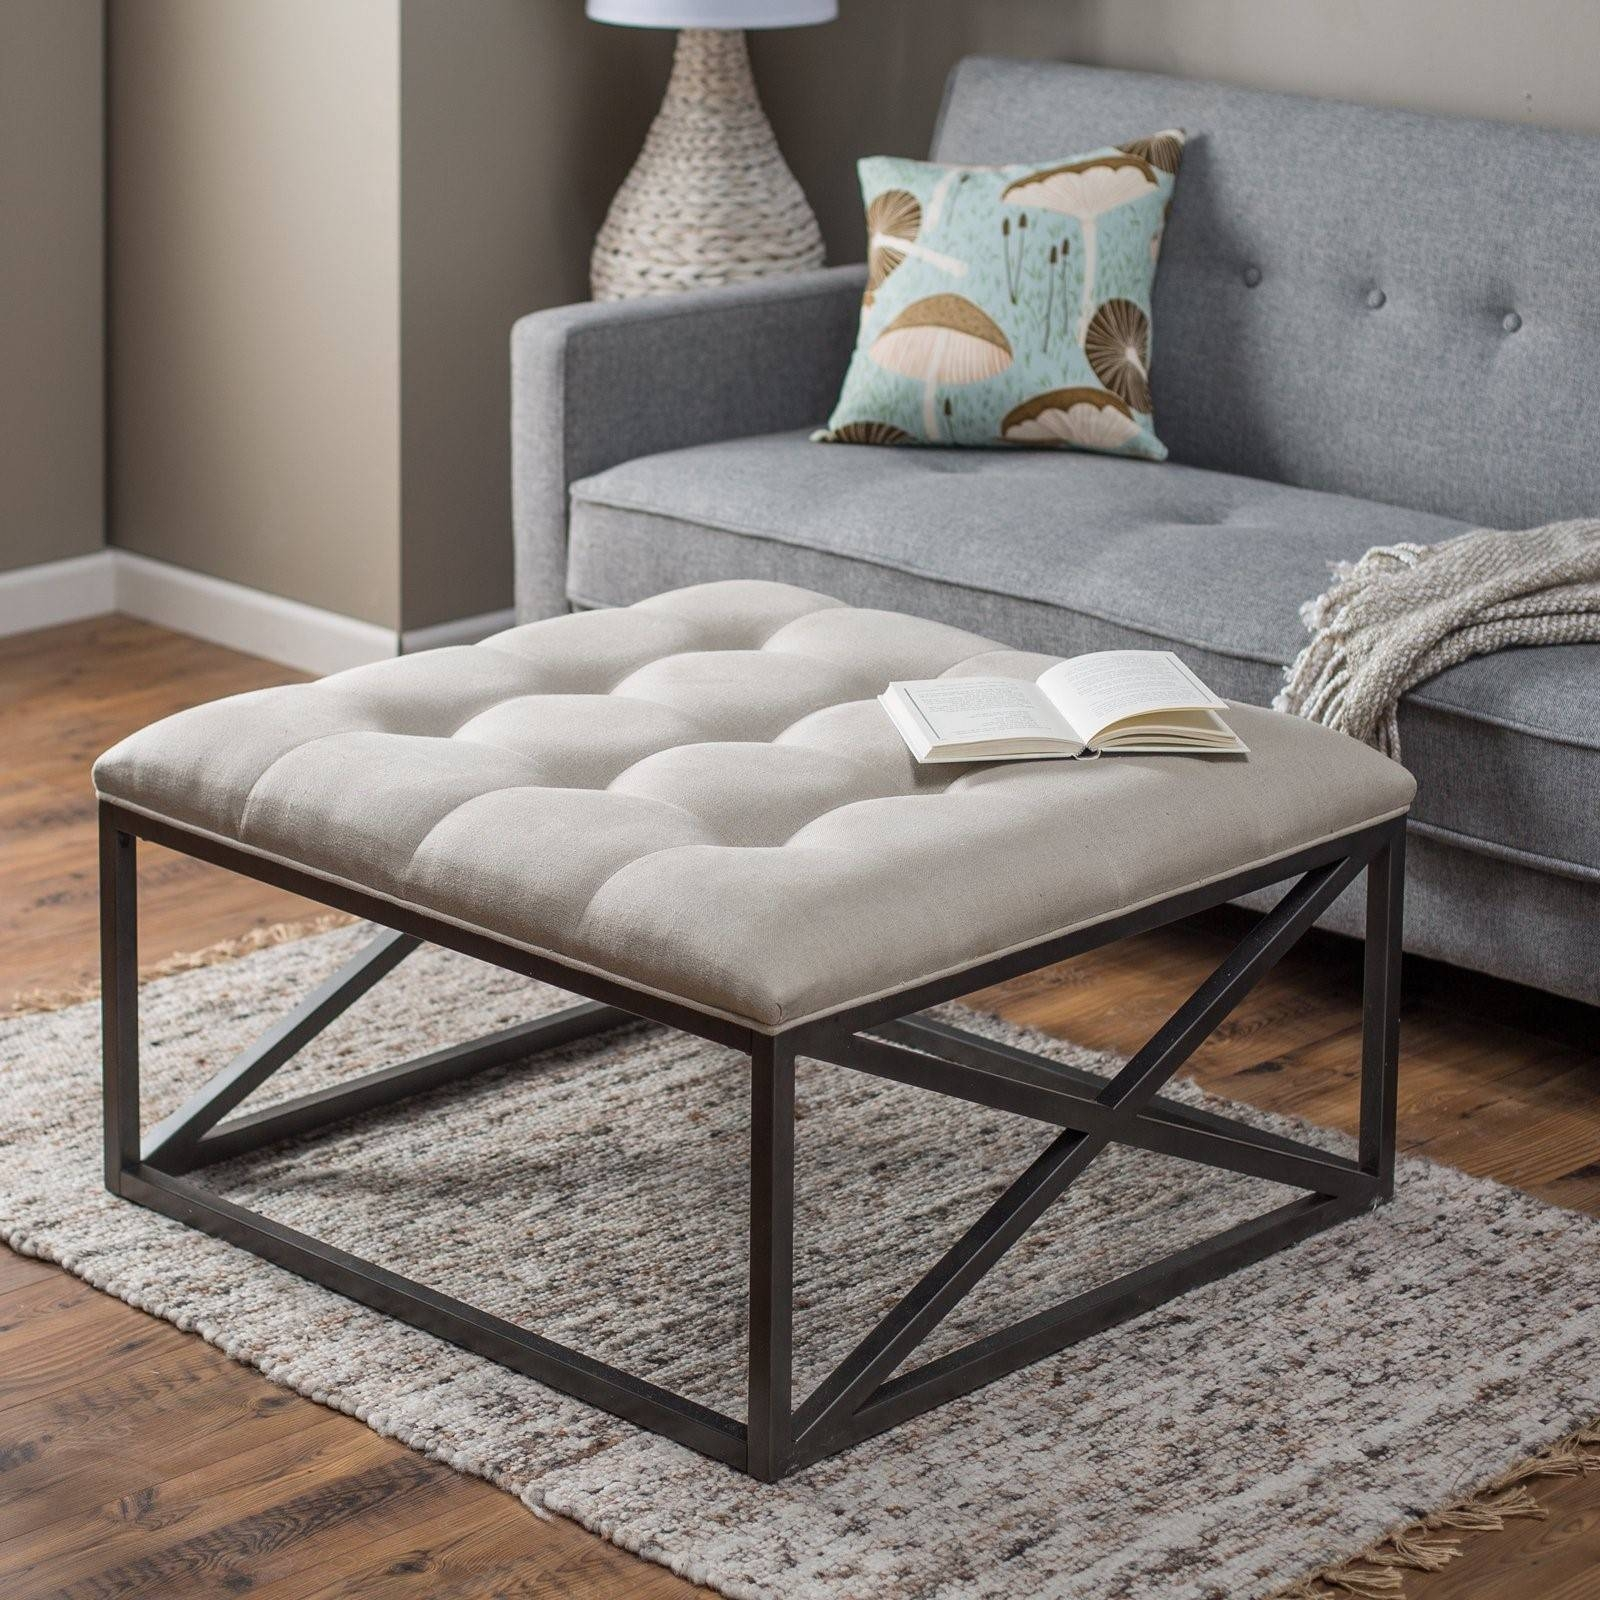 Furniture. Fabric Coffee Table Ideas: Beige Low Square Traditional inside Fabric Coffee Tables (Image 17 of 30)